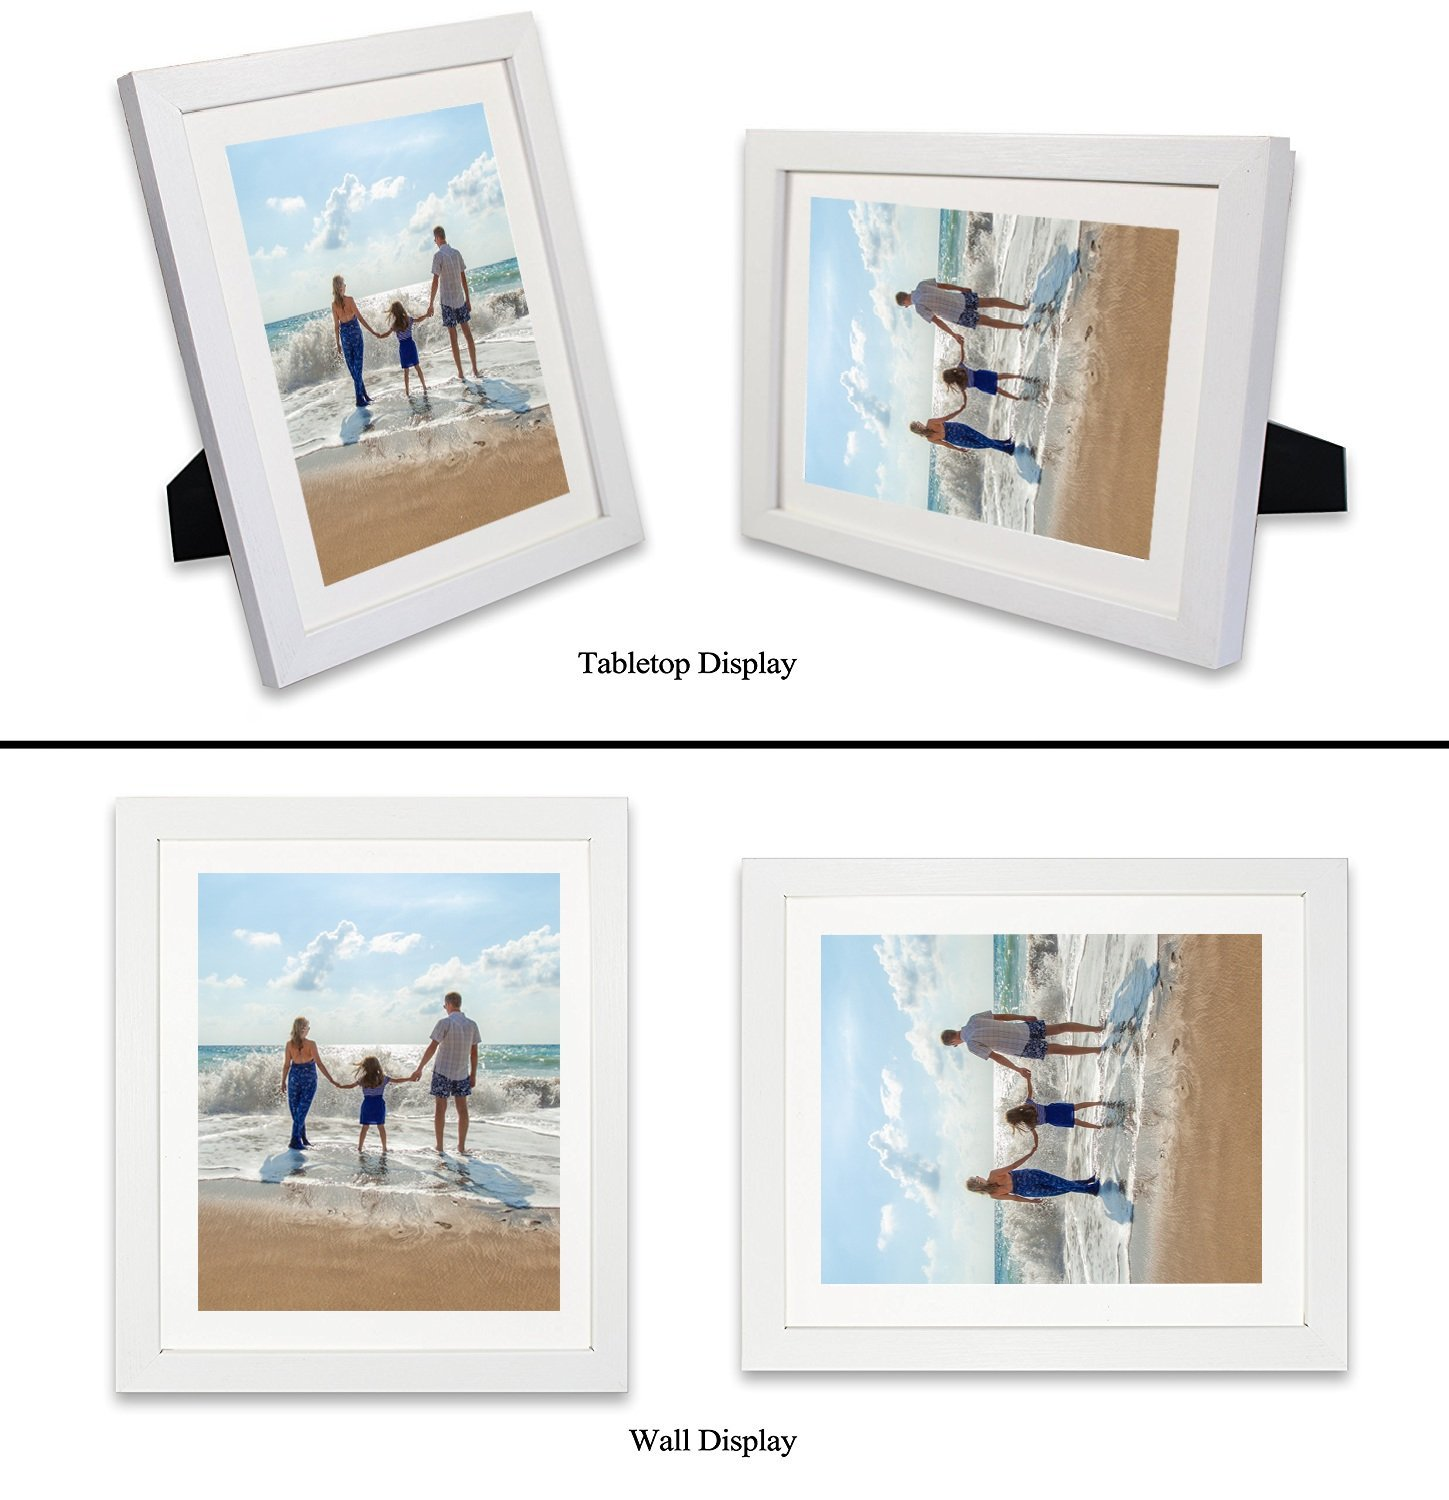 Amoy Art 8 x 10 White Picture Frame Made to Display Pictures Photo Frame 6x8 with Mat or 8x10 Without Mat Plexiglass Cover 3 Pack/Set for Wall & Tabletop